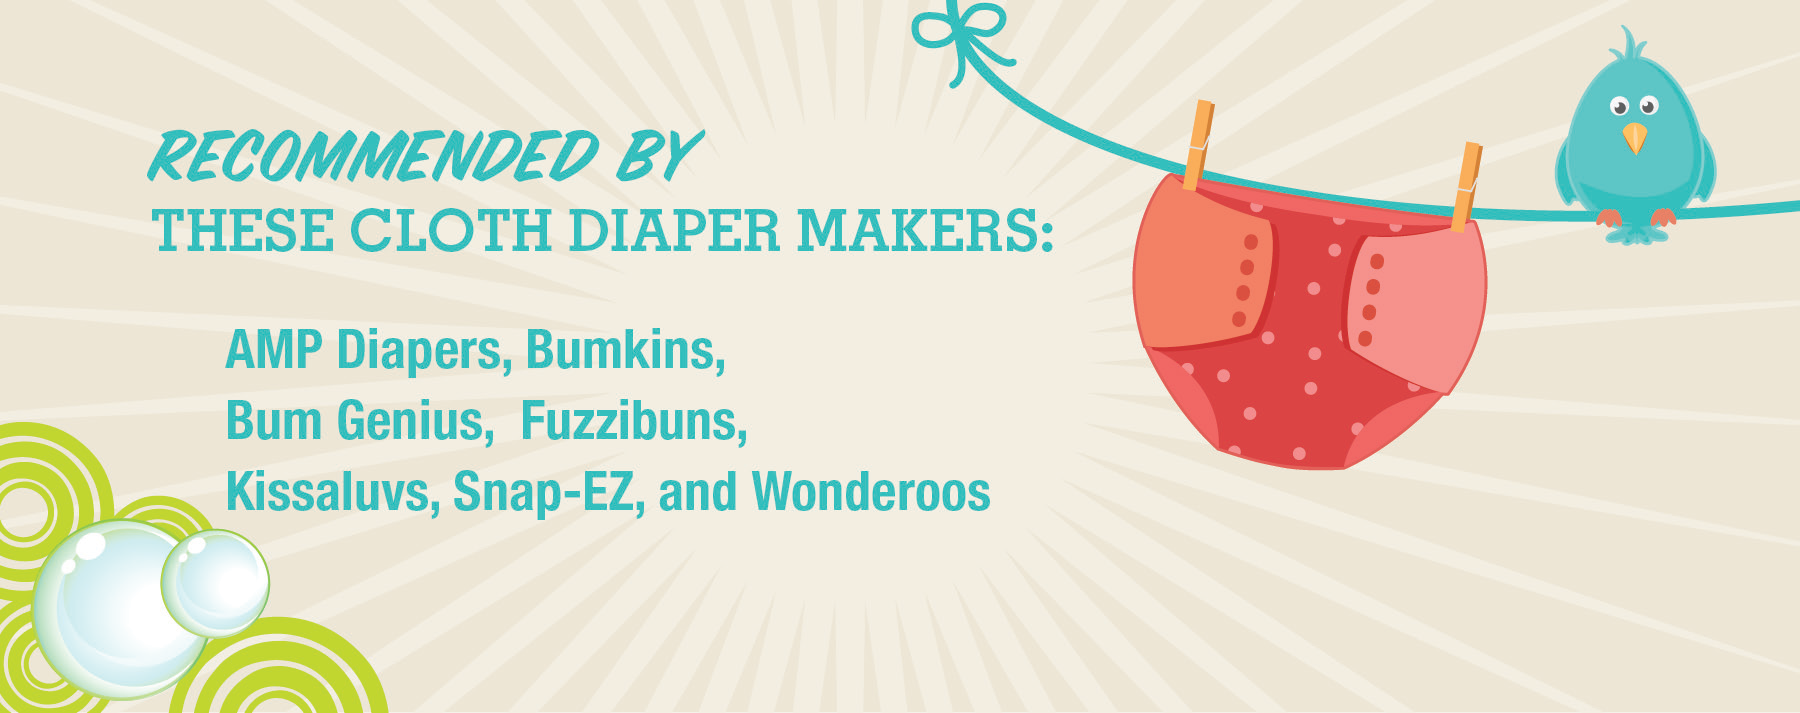 allens naturally cloth diaper detergent recommended by manufacturers